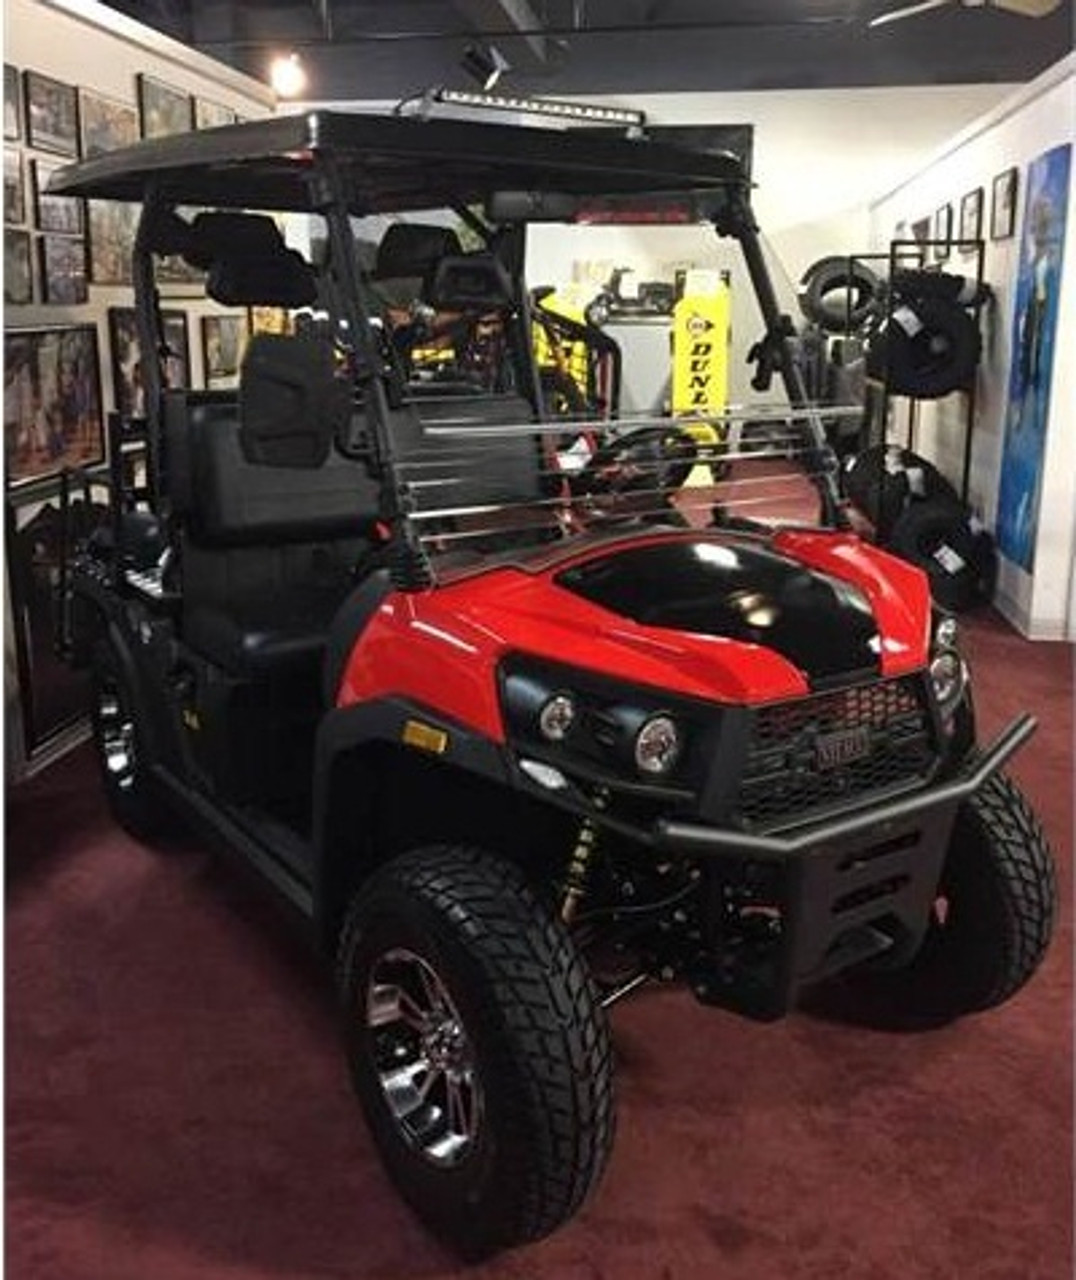 Red - Vitacci Rover-200 EFI 169cc (Golf Cart) UTV, 4-stroke, Single-cylinder, Oil-cooled - Fully Assembled and Tested